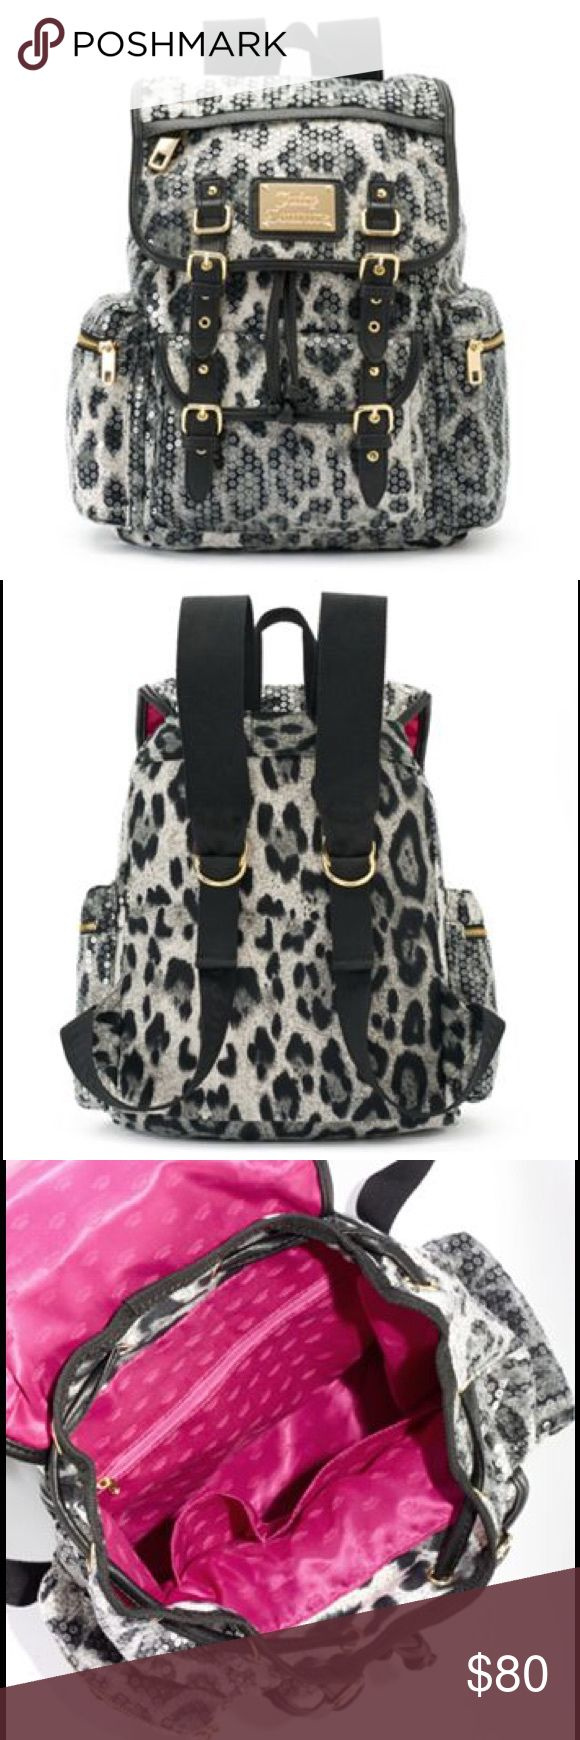 "JUICY COUTURE Sequin Black/White Leopard Backpack 🎉HP🎉NWT Juicy Couture black and gray glittery leopard backpack will add style to your wardrobe!  Glittery leopard design 13''H x 10.25''W x 5.5''D Top handle: 3'' Nylon Top handle & adjustable straps Magnetic snap & drawstring closures Exterior: 3 zip pockets & magnetic snap slip pocket Interior: 2 slip pockets & zip pocket Fabric, faux leather Clear Sequins Goldtone hardware & ""Juicy Couture"" logo plate Hot pink crown signature print…"